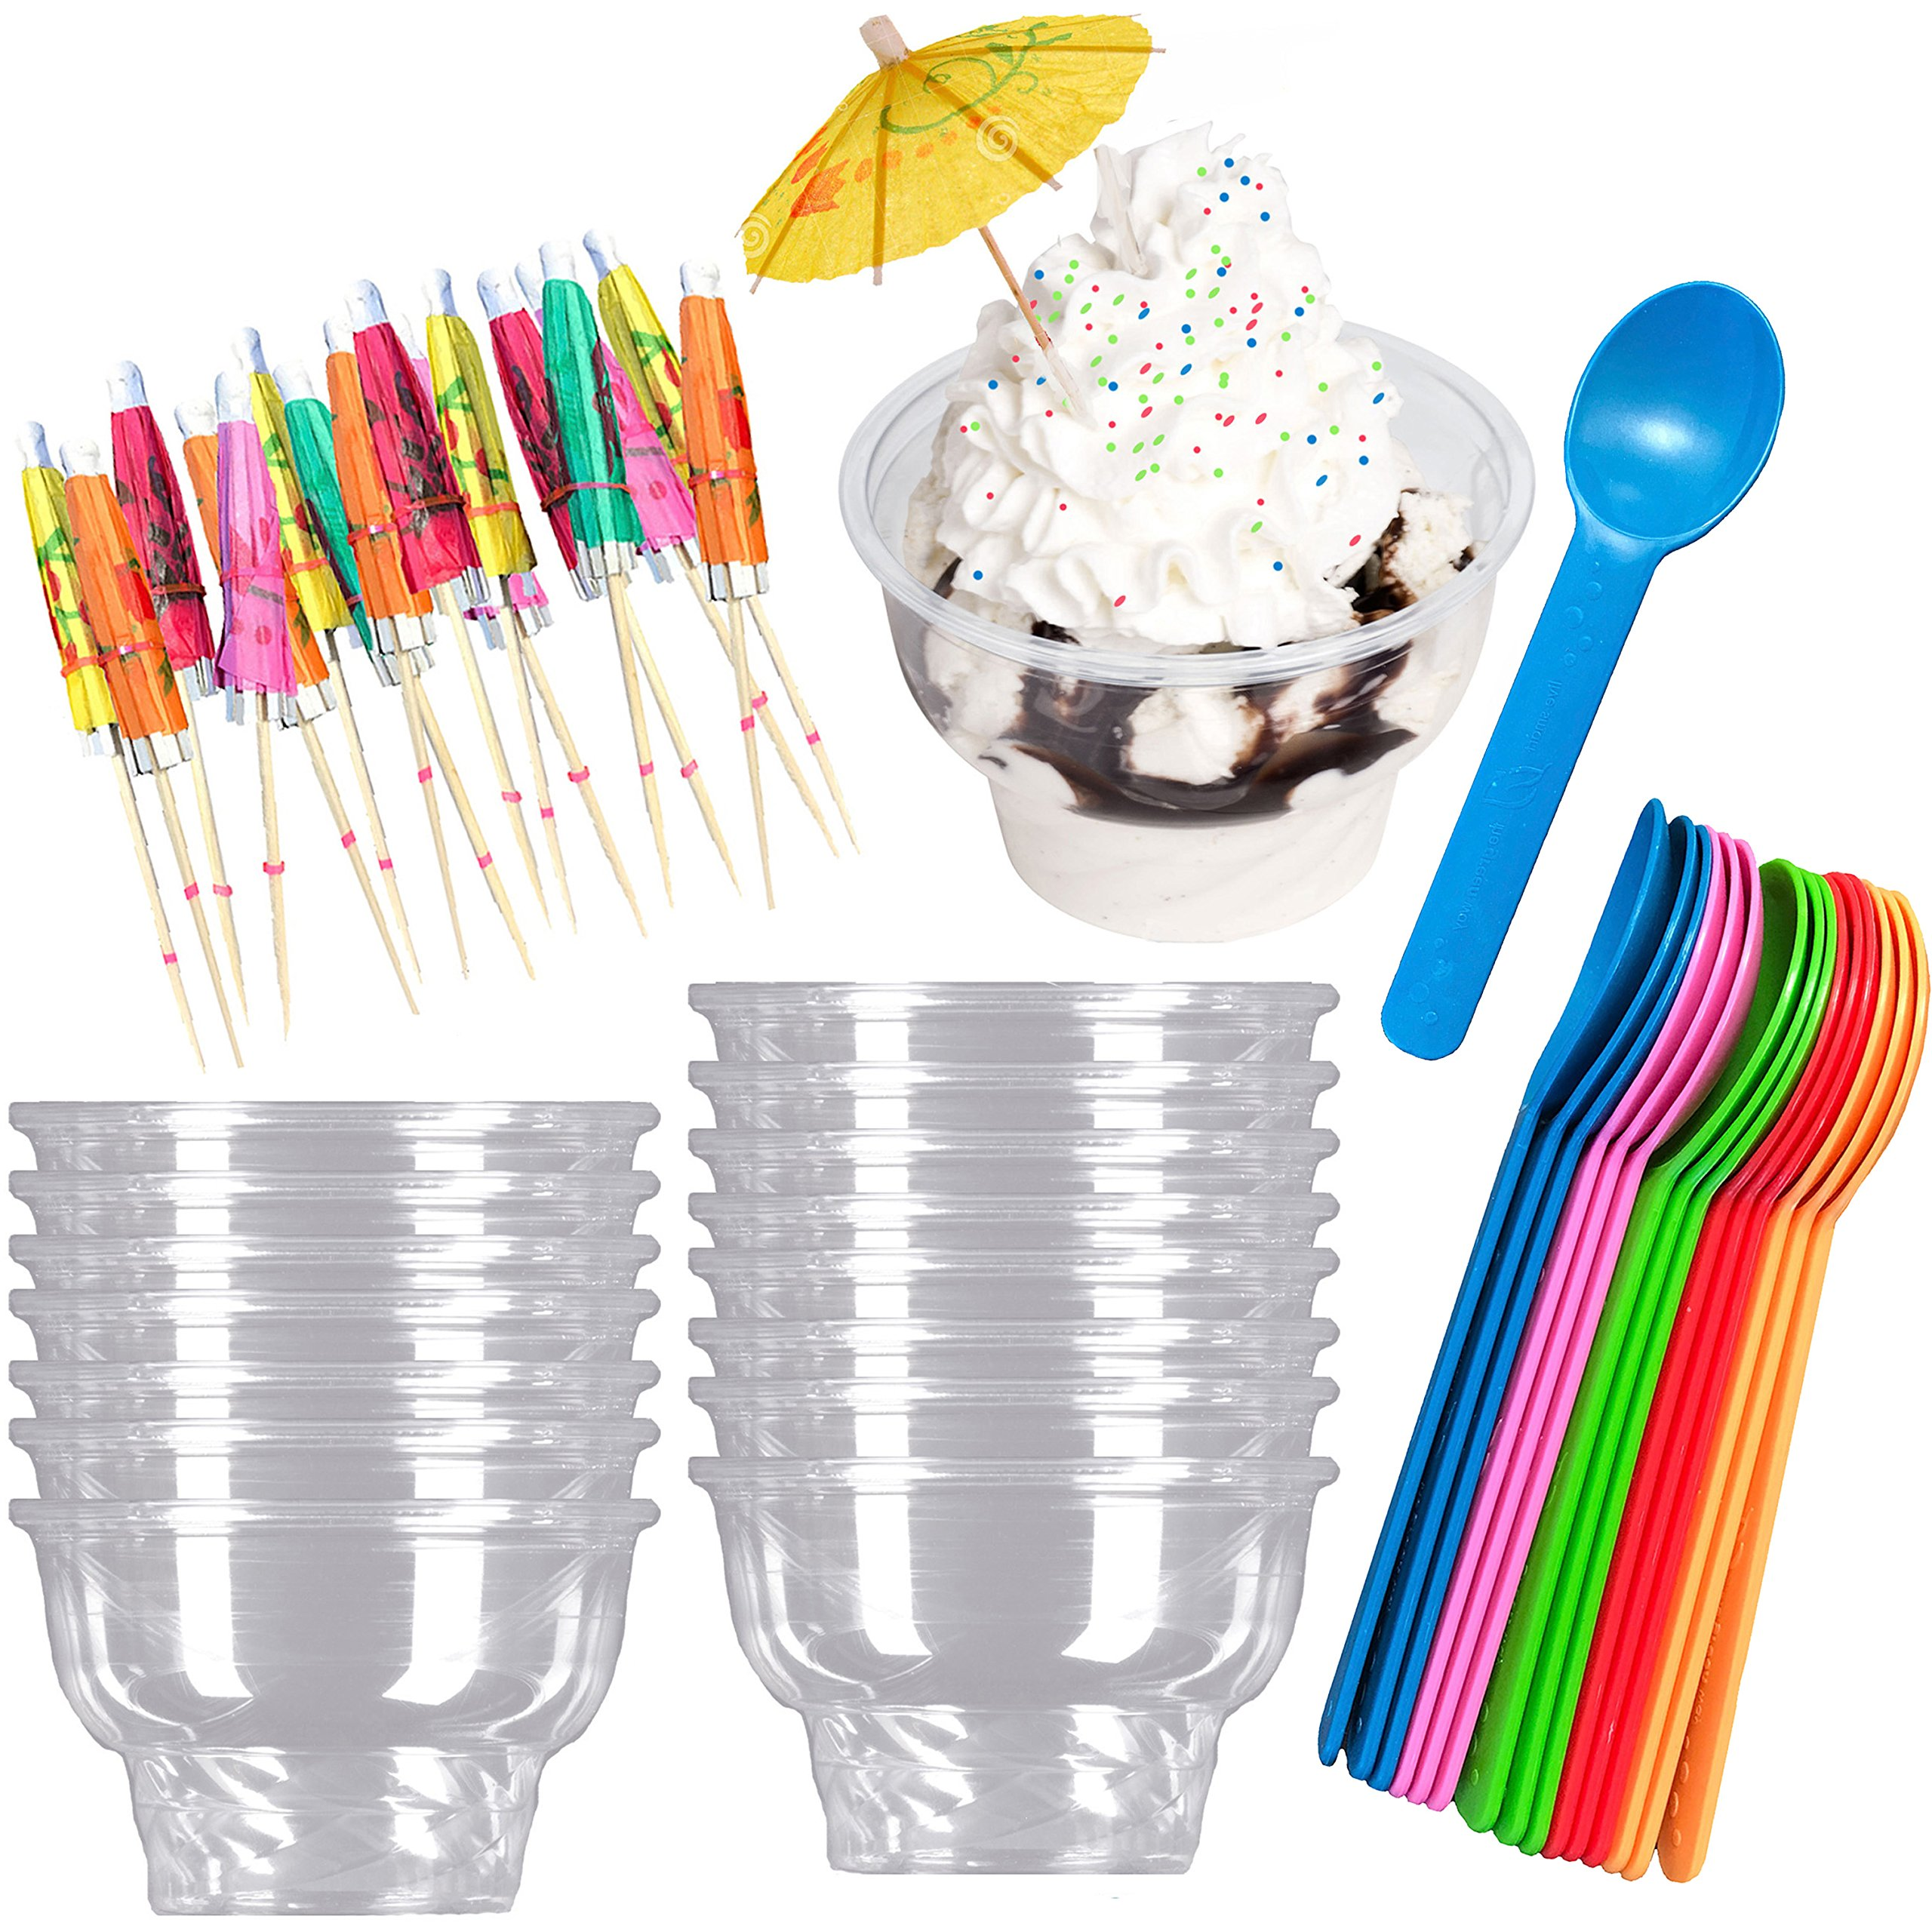 Ice Cream Sundae Kit - Clear Plastic 8 Ounce Dessert Dishes - Eco Friendly Plastic Spoons - Paper Umbrella Picks- 16 Each - Pink, Blue, Yellow, Green, Orange Party Supplies